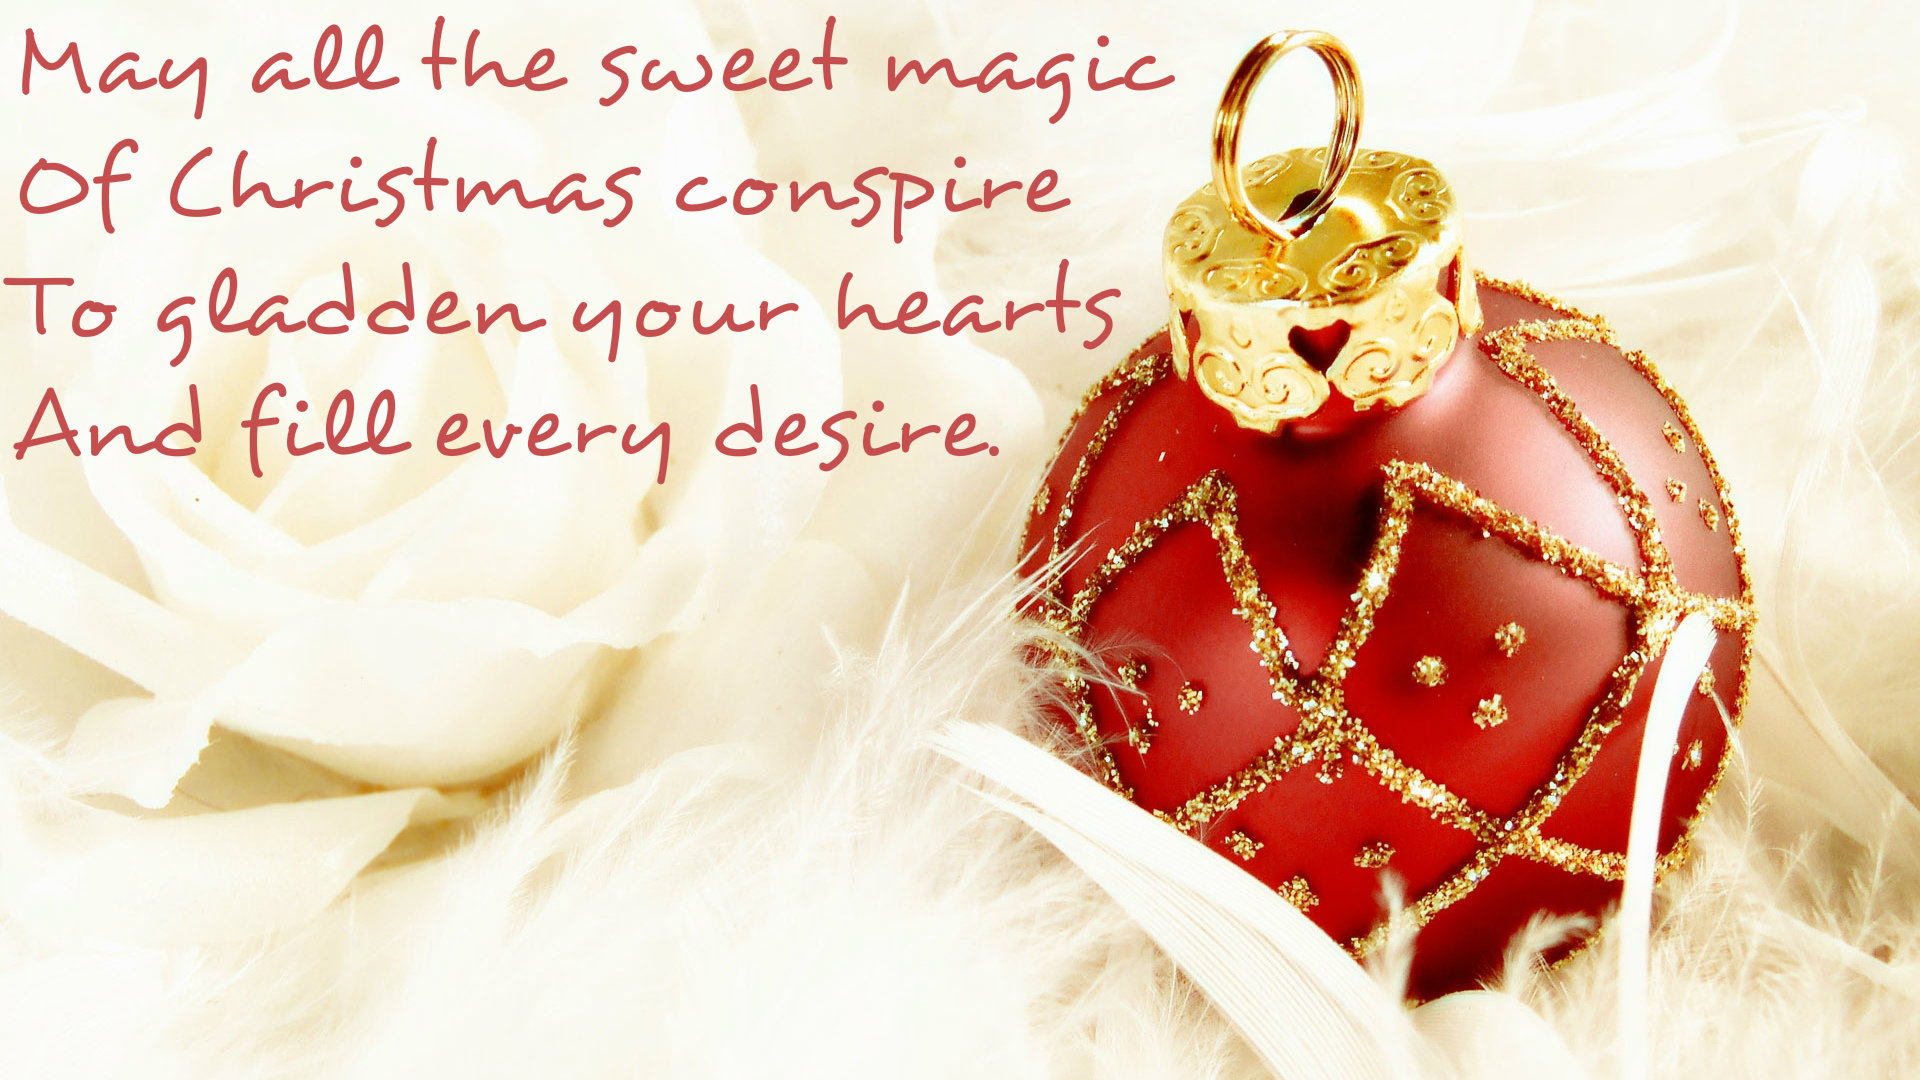 Superb Merry Wishes Greetings 4allogspot200712 Messagesml Messages Photos Quotes Wordings photos Inspirational Christmas Messages